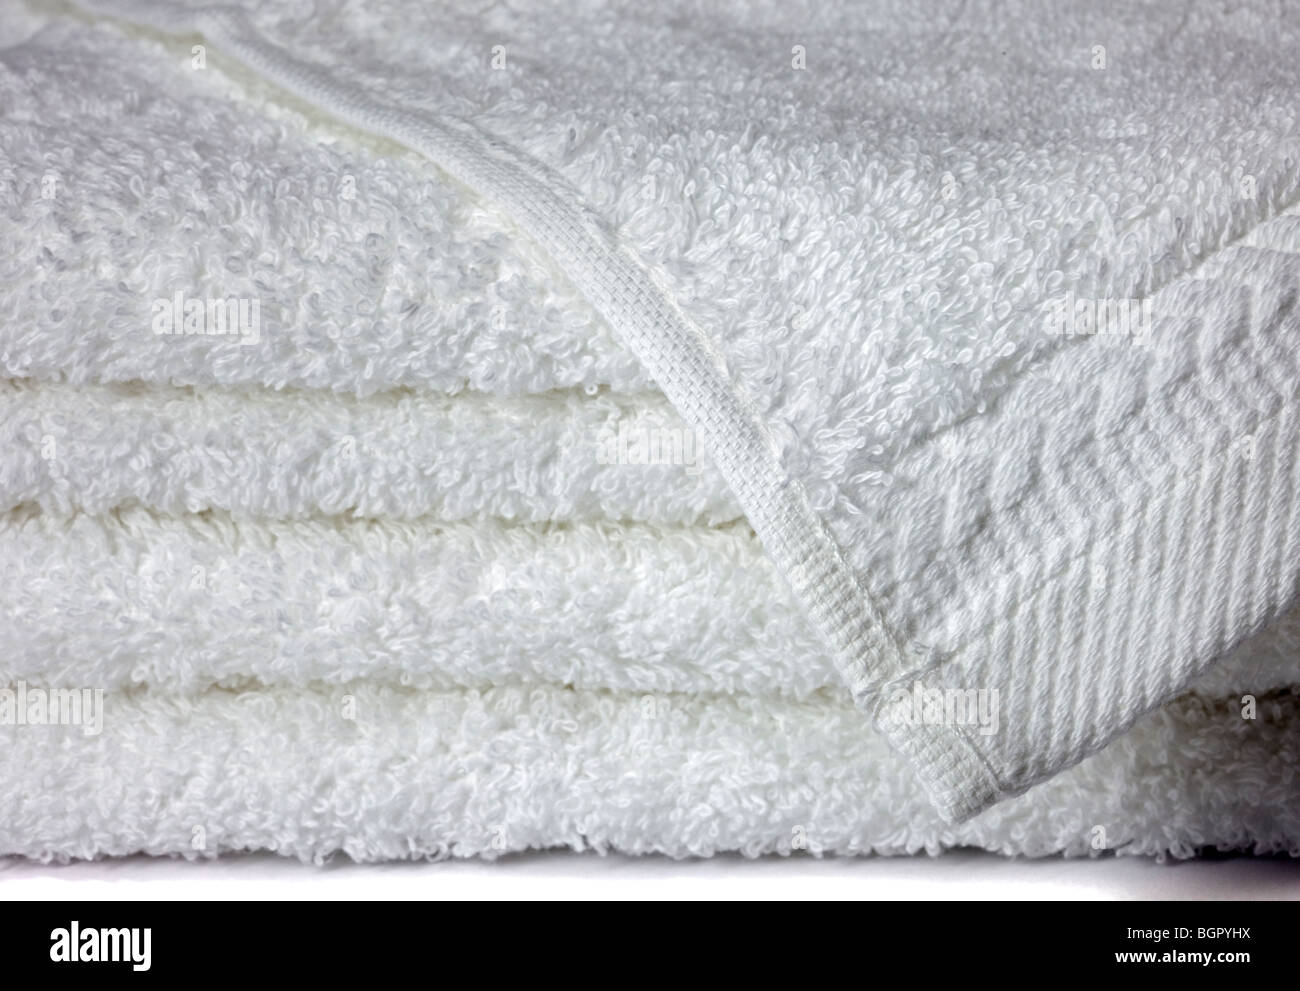 White Towel Bale - Stock Image